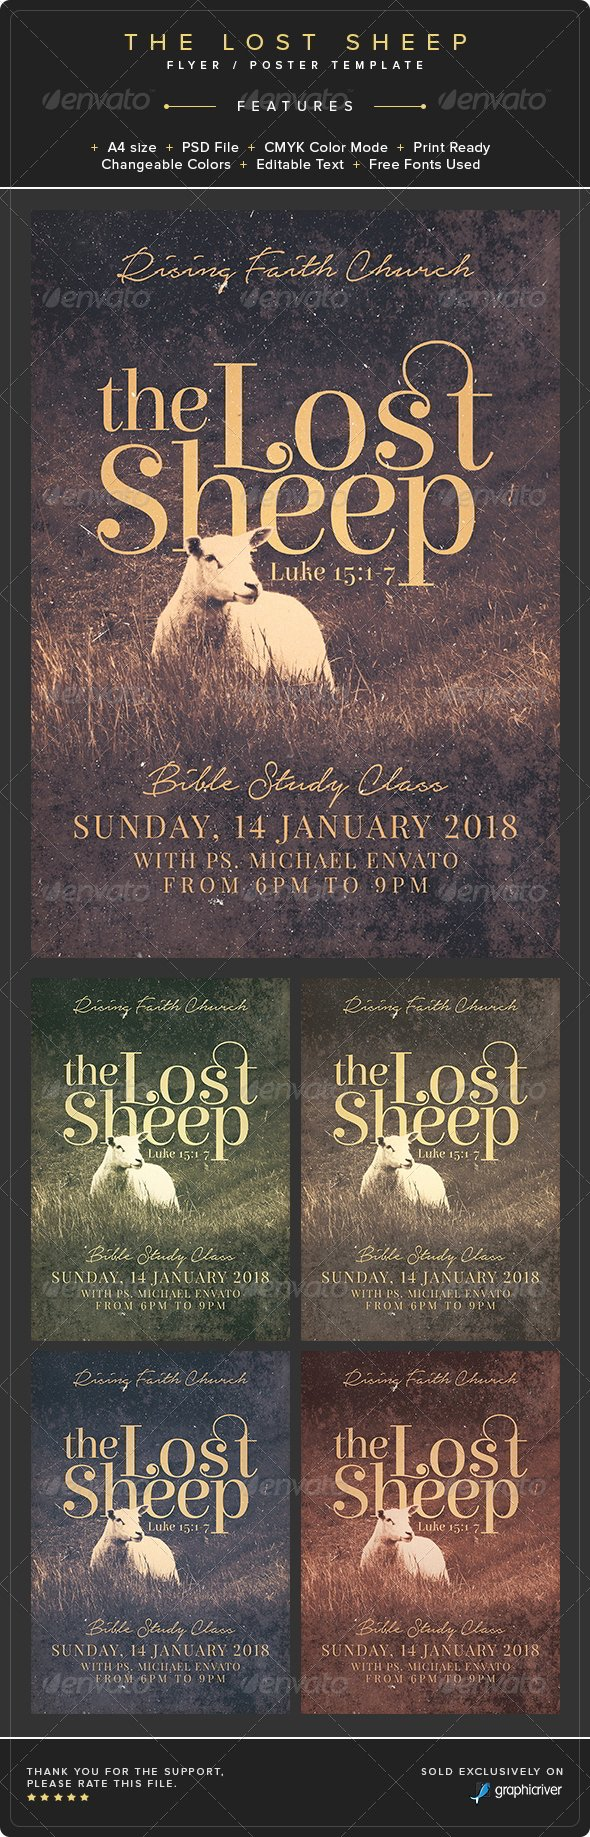 Lost Pet Template Google Docs Best Of the Lost Sheep Flyer Poster Template